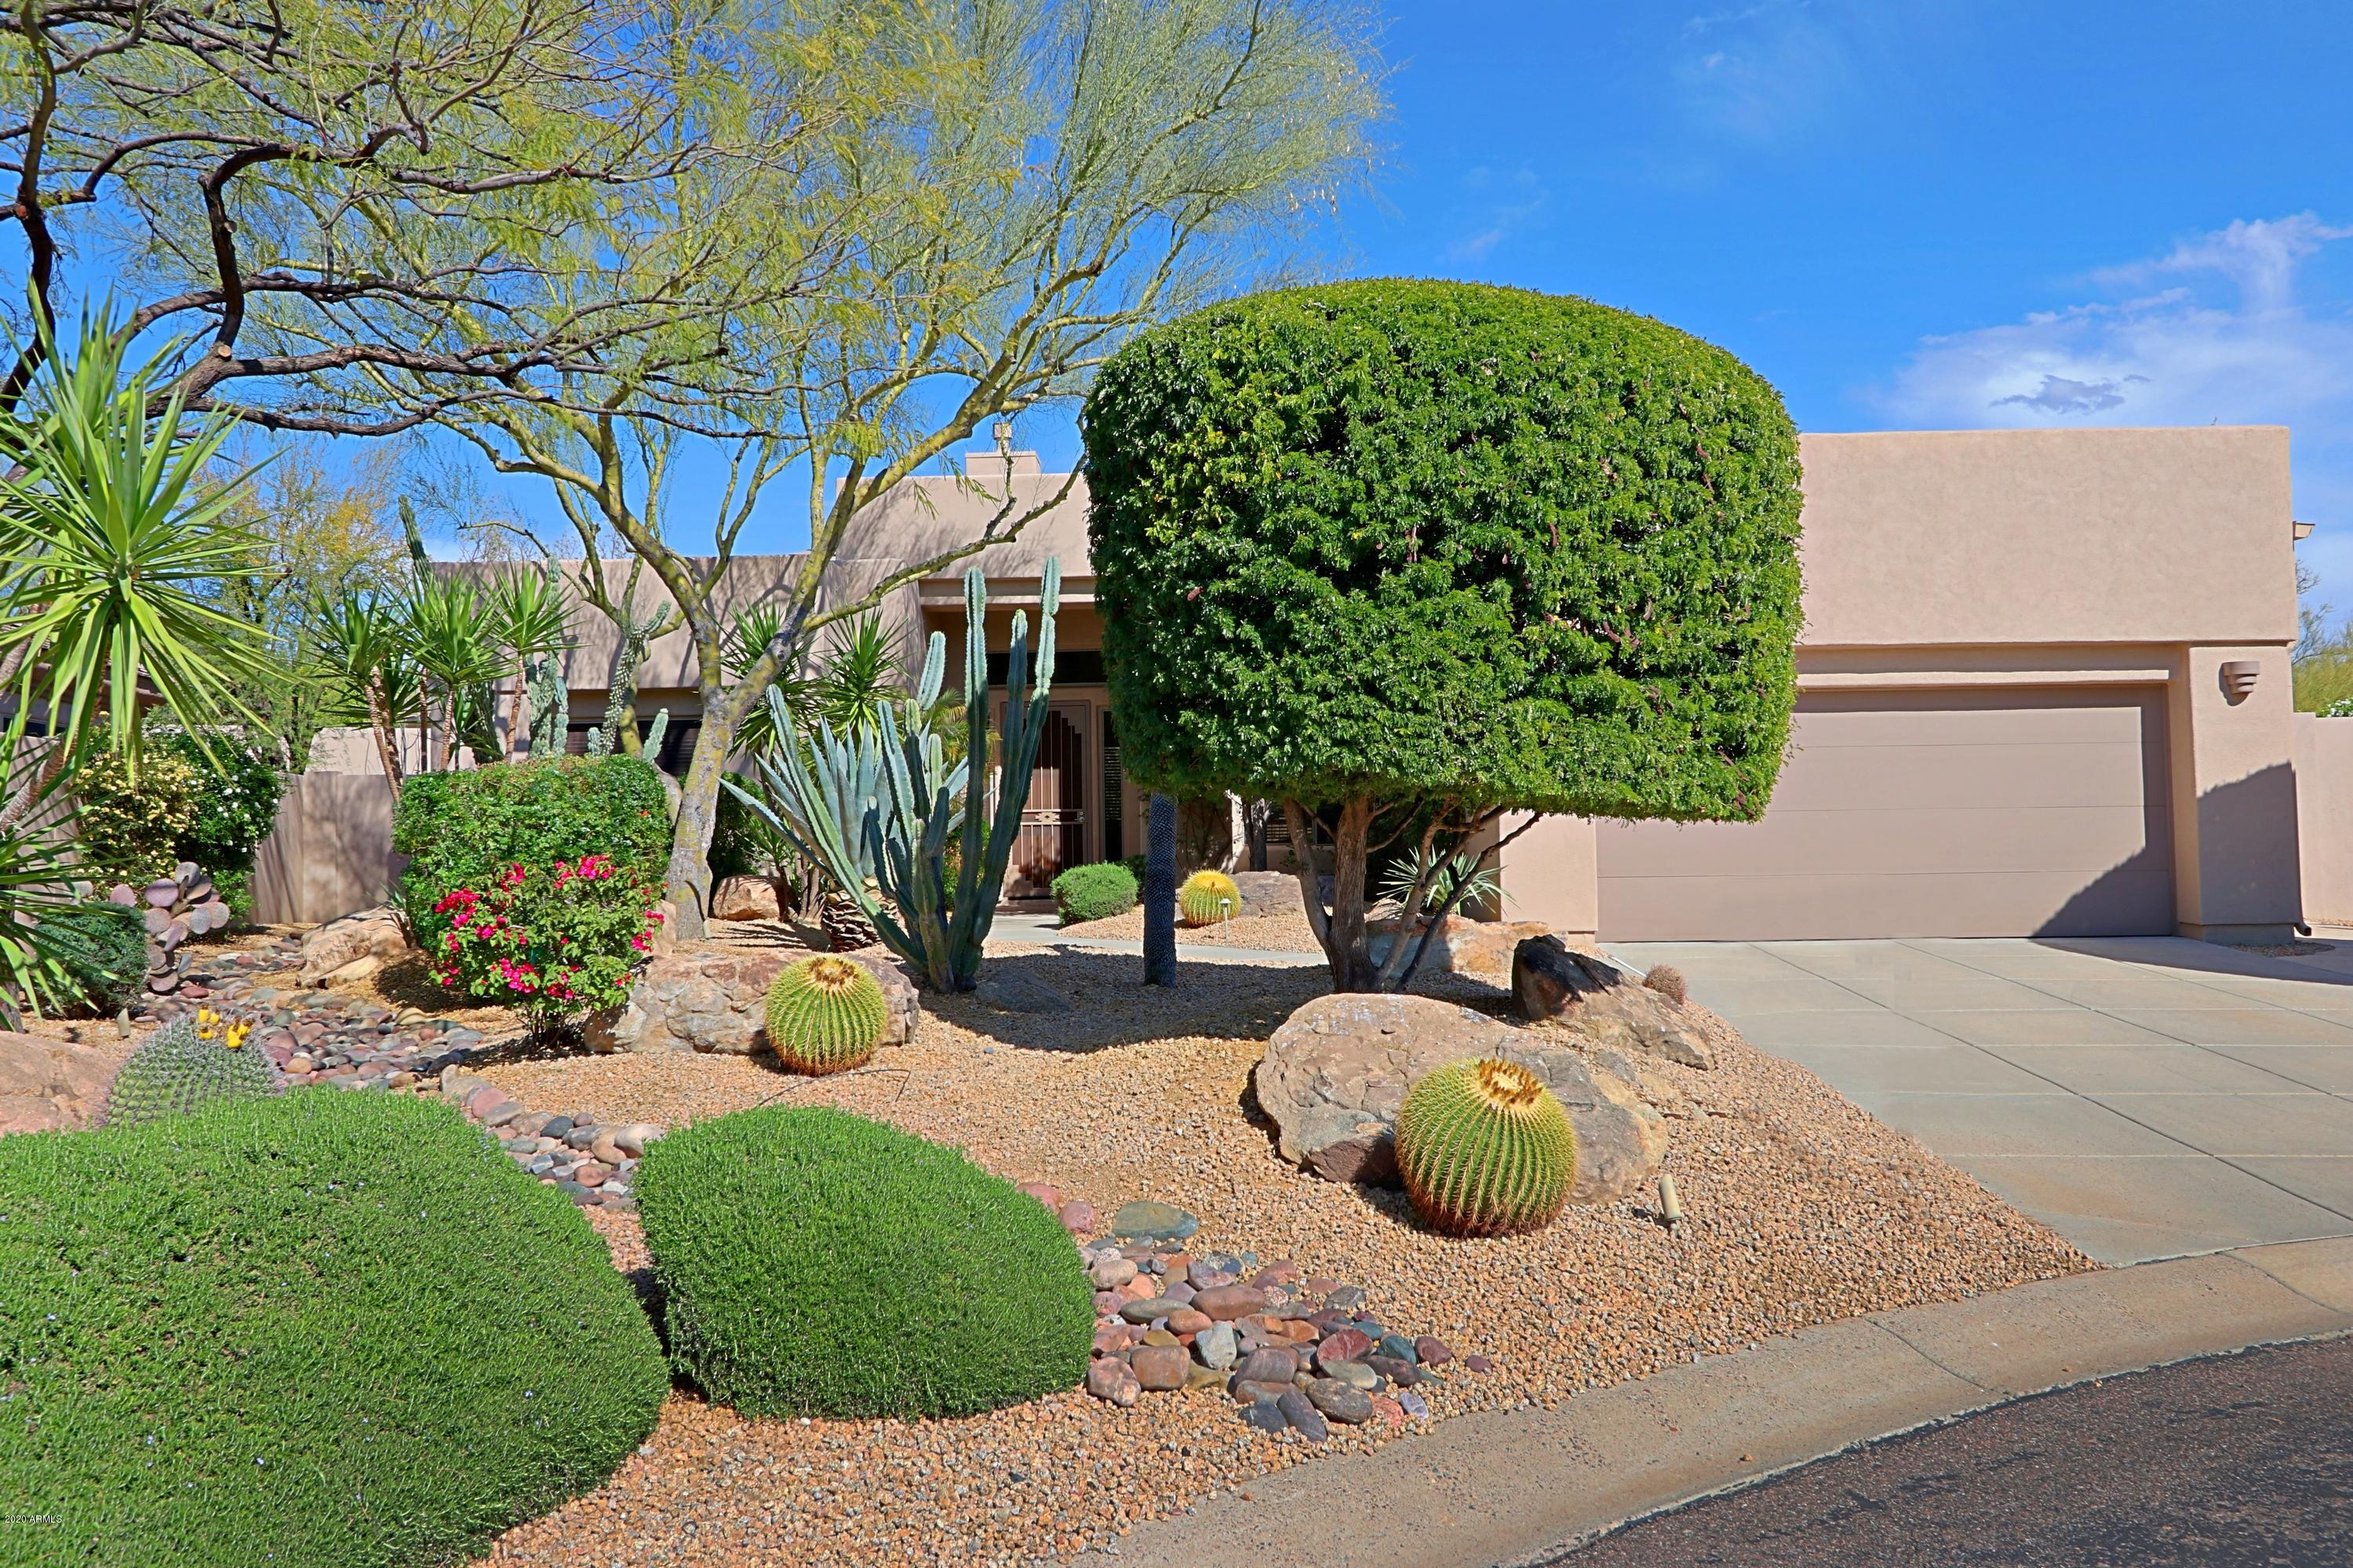 Photo of 34089 N 66TH Way, Scottsdale, AZ 85266